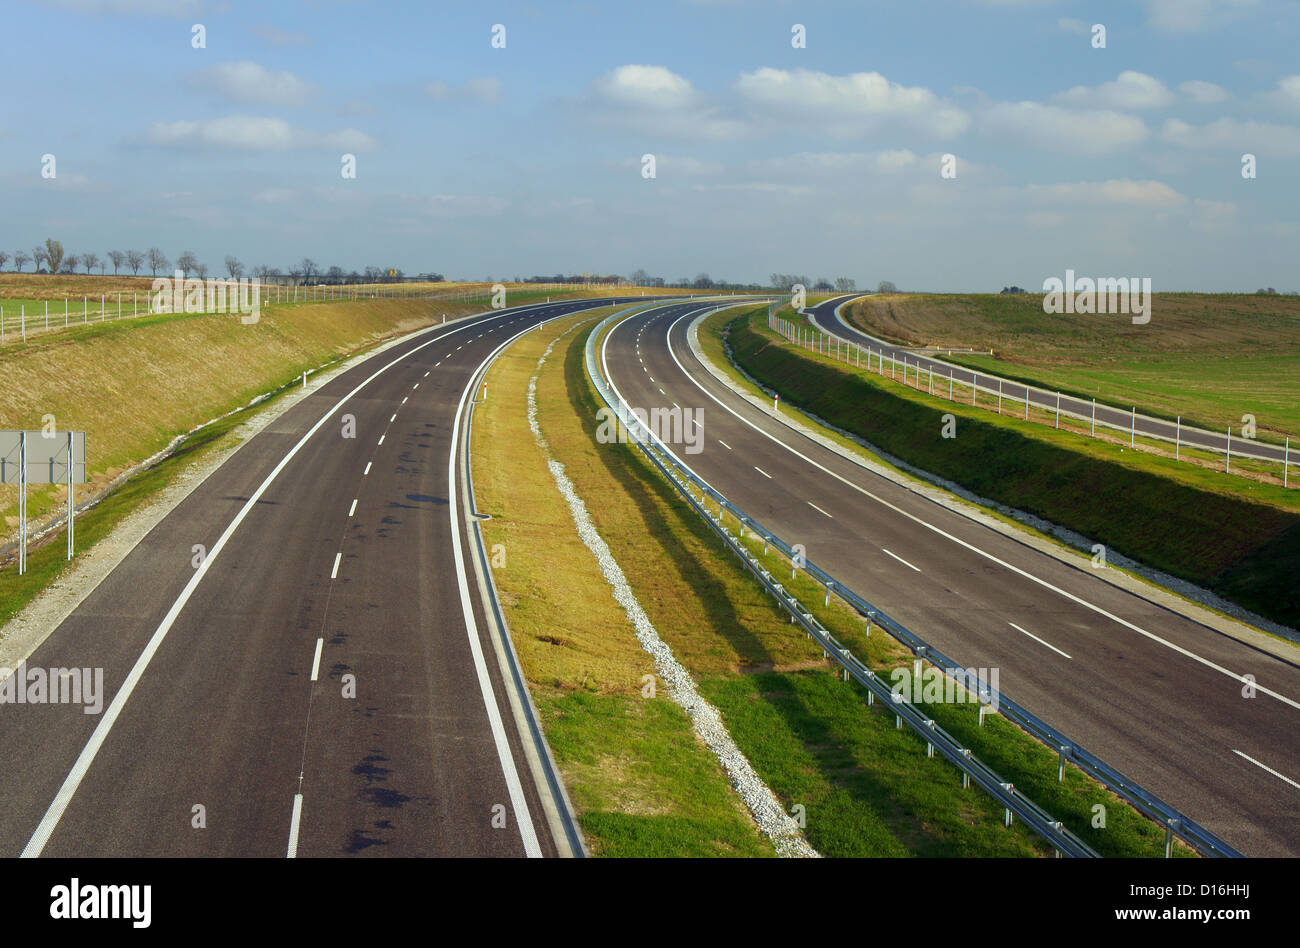 orbital road under construction in Poznan, Poland - Stock Image